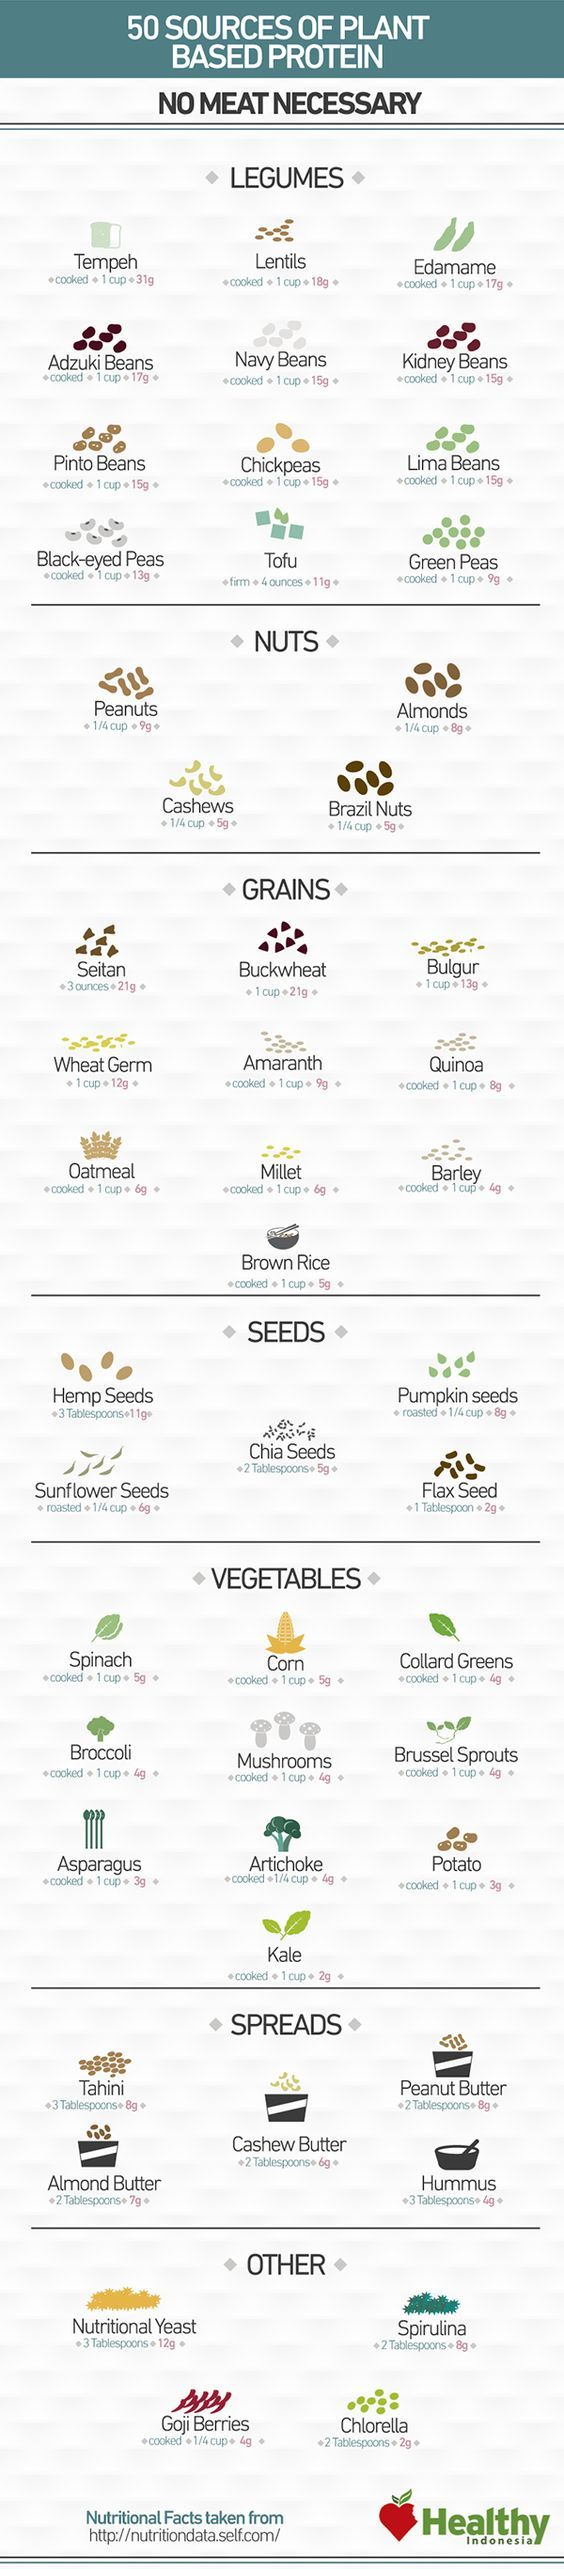 50 Sources of Plant Based Protein